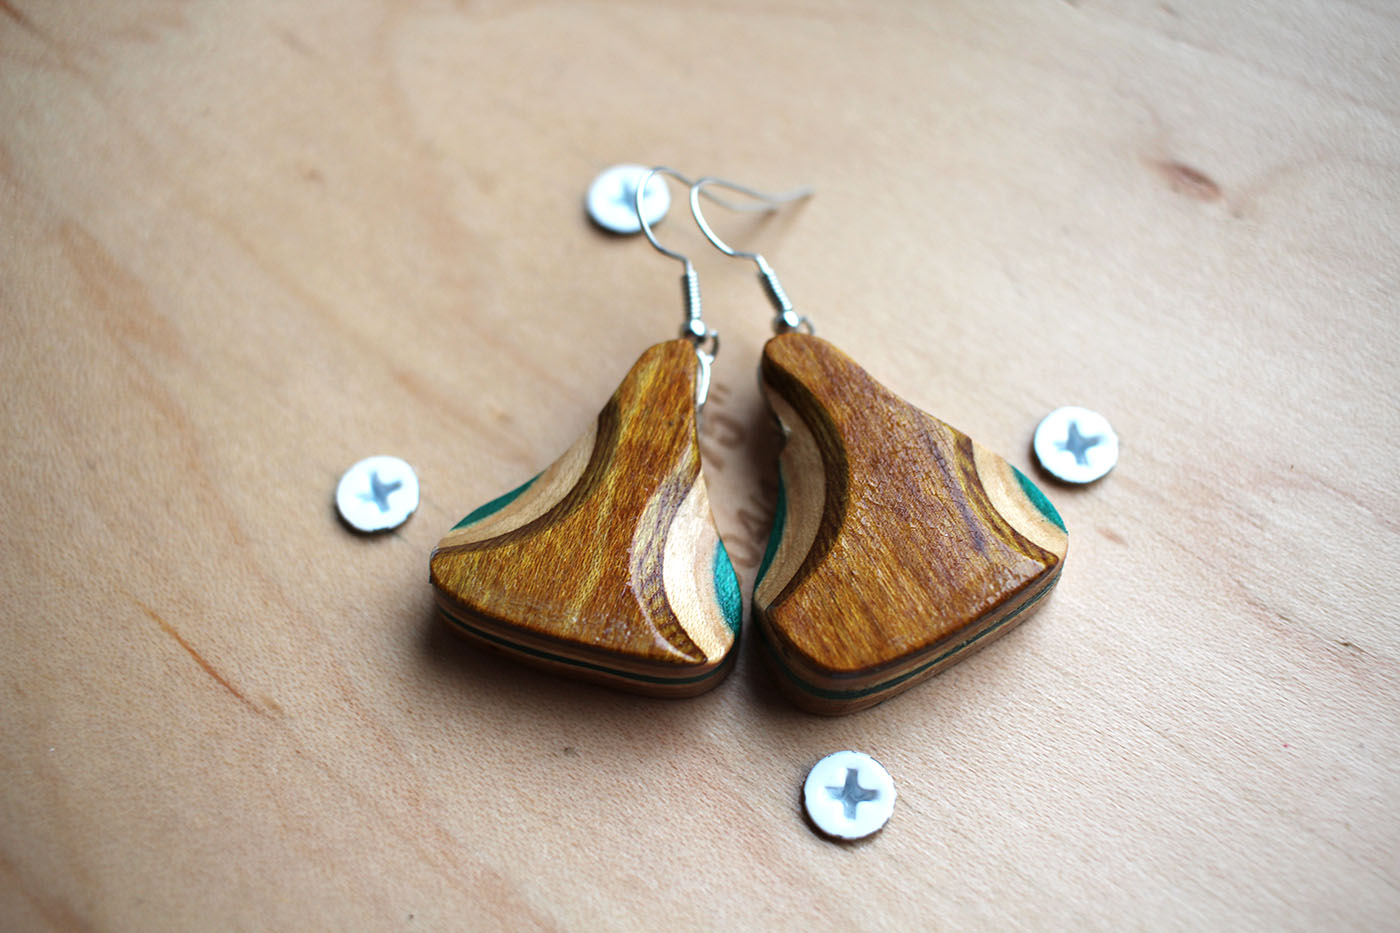 Earring unique and upcycled earrings handcrafted from used skateboard wood